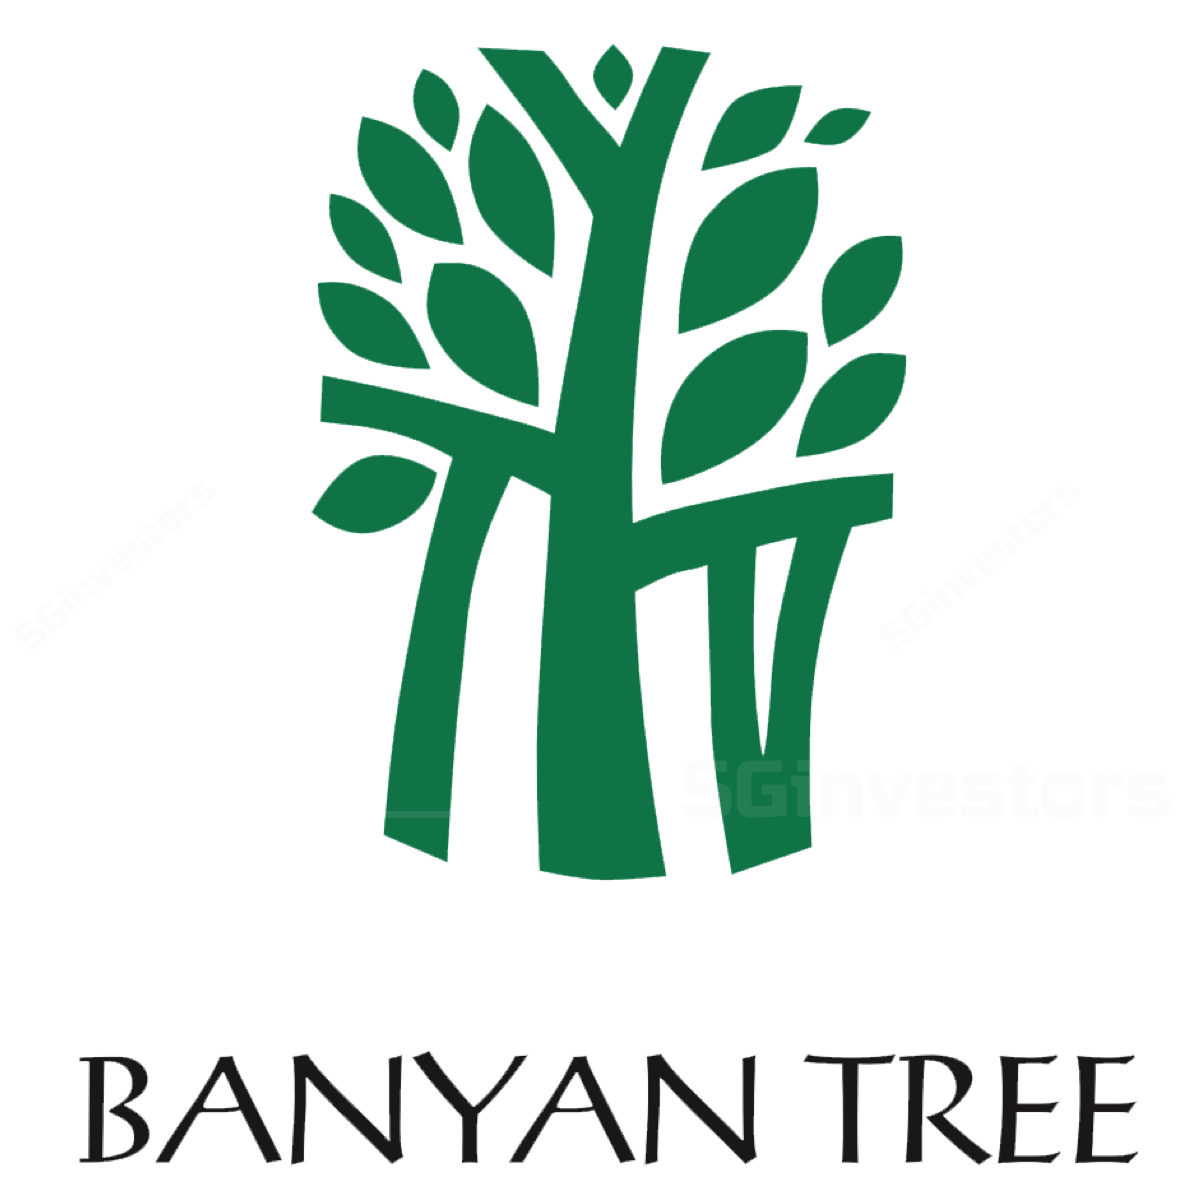 Banyan Tree Holdings Limited logo